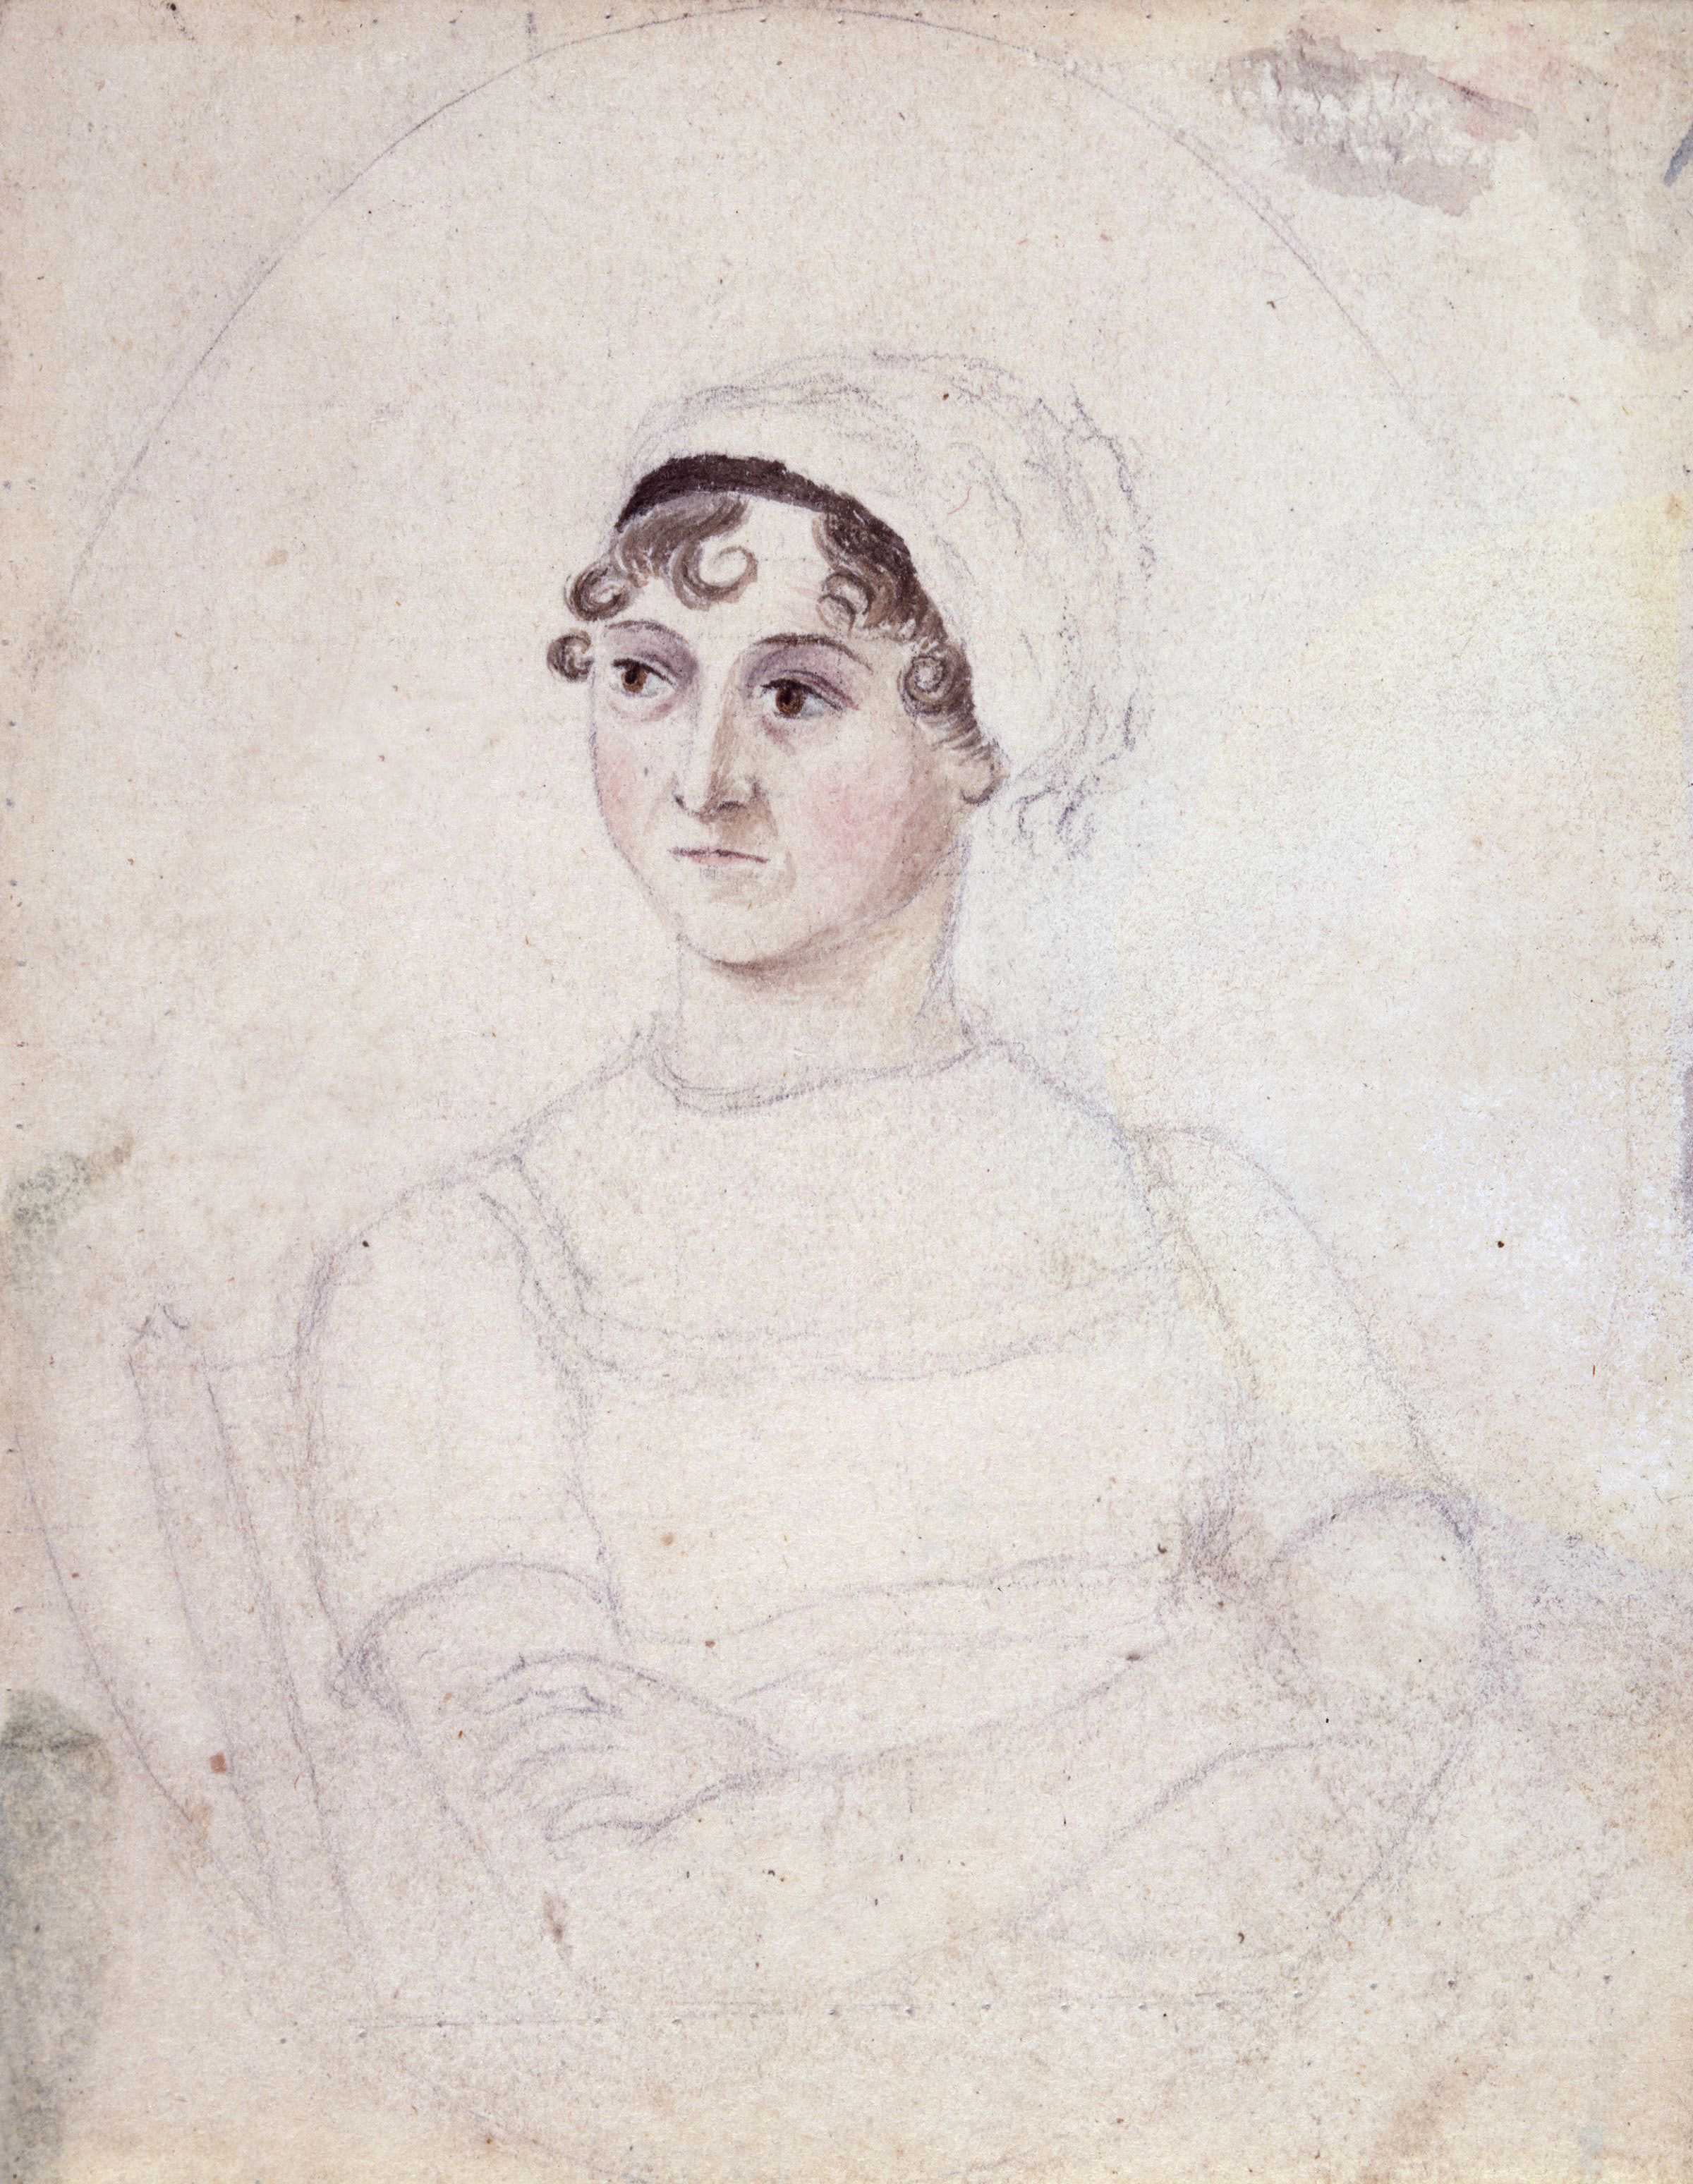 Jane Austen Cassandra Austen sketch 